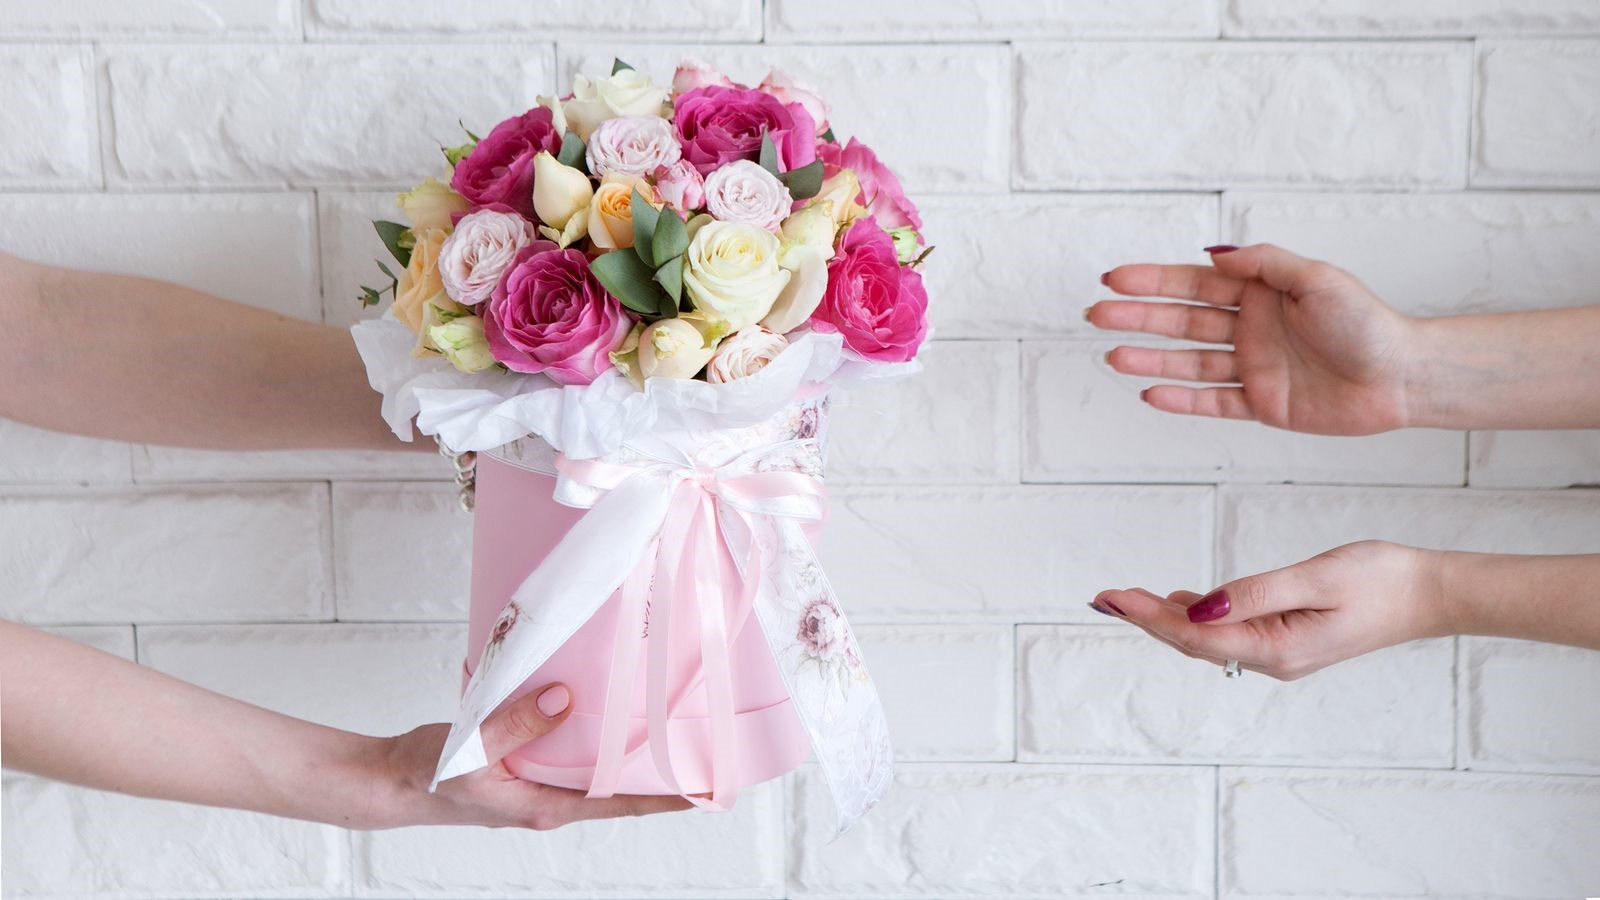 Flowers for Every Occasion